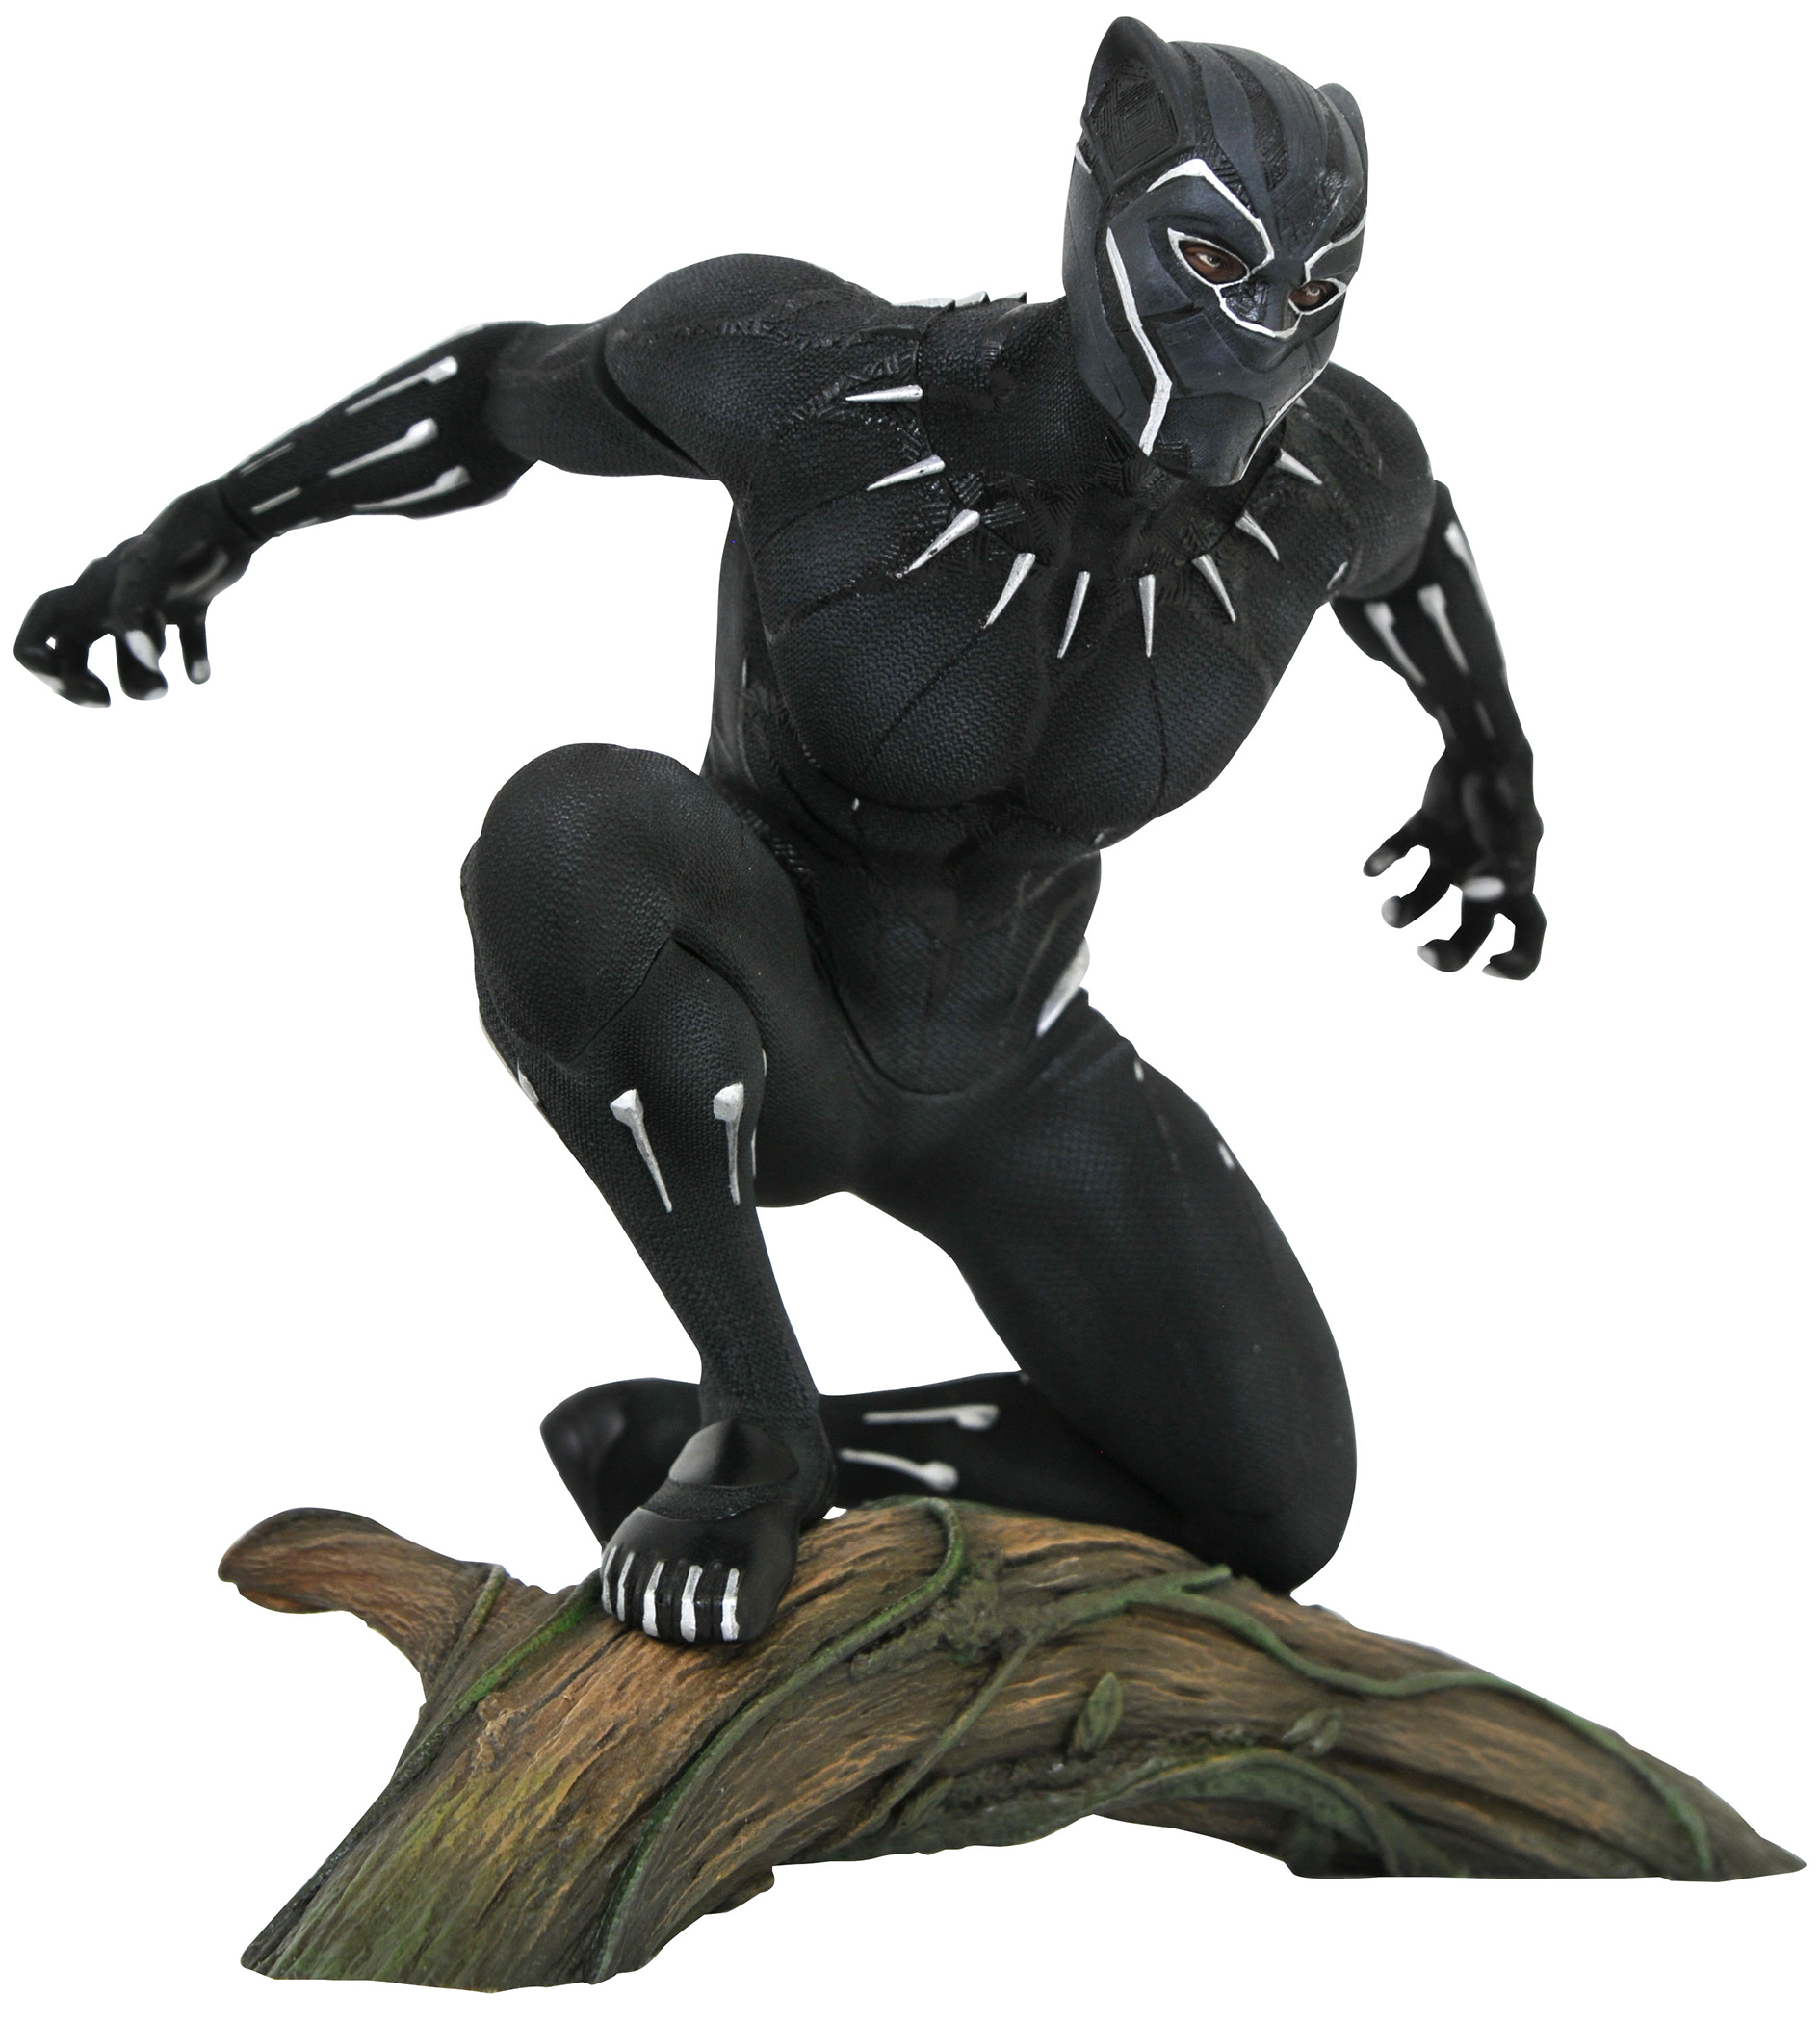 MARVEL BLACK PANTHER MOVIE COLLECTORS STATUE